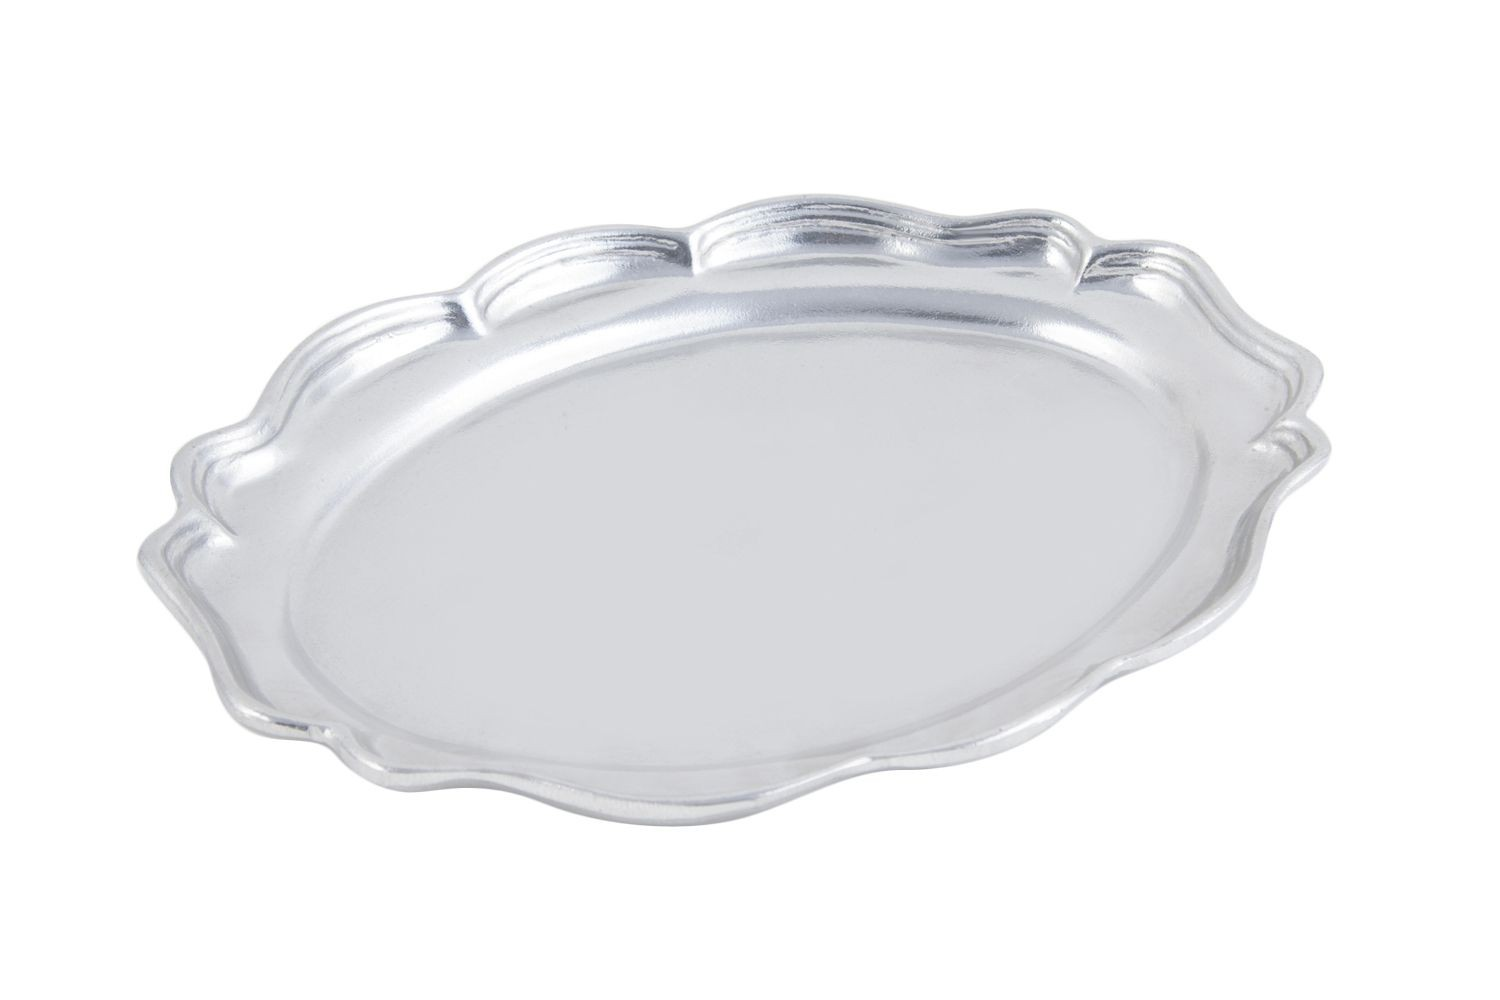 "Bon Chef 2022P Queen Anne Oval Platter, Pewter Glo 9 1/2"" x 12"", Set of 3"